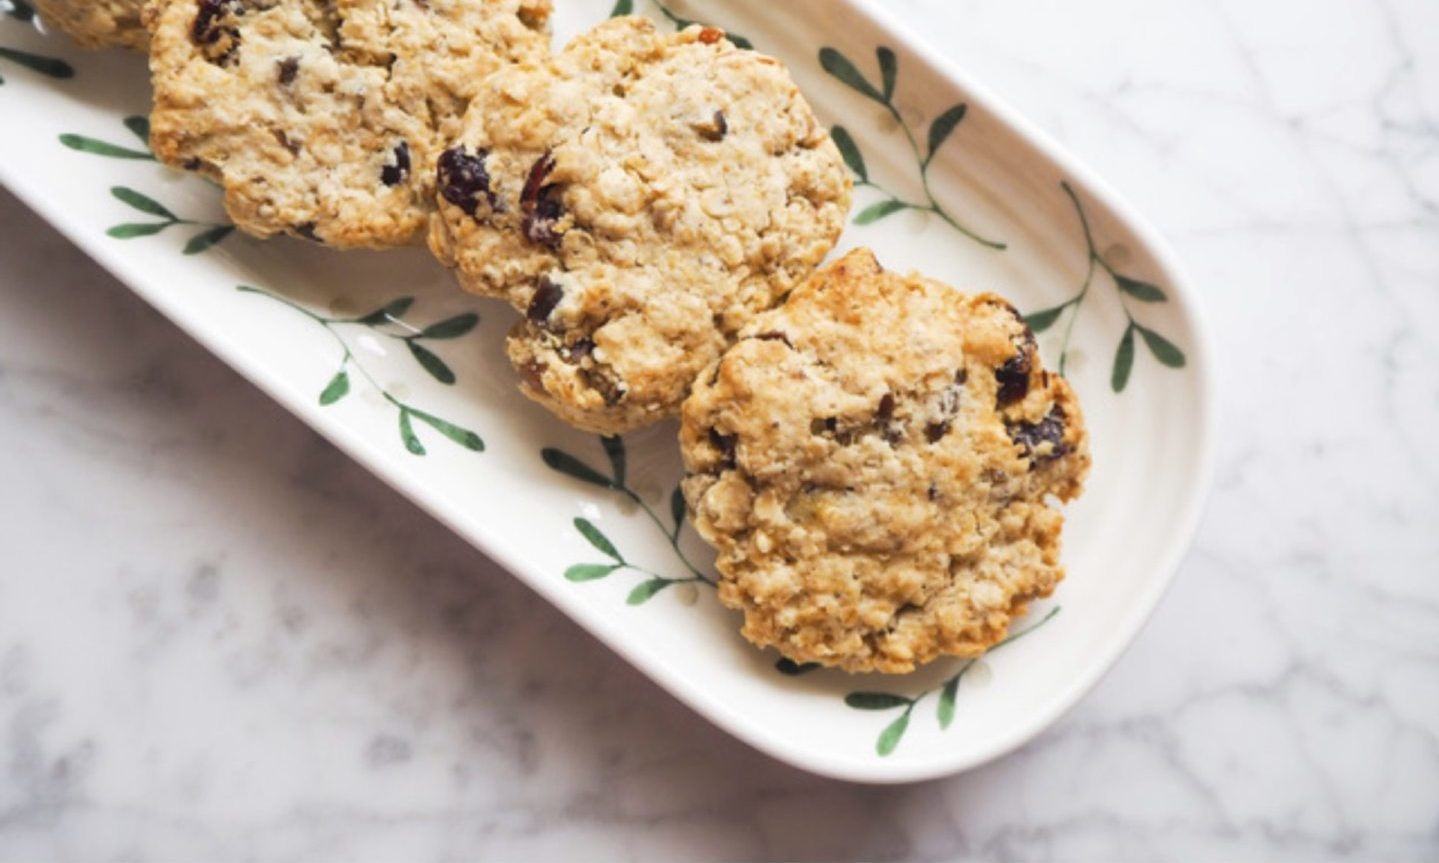 Oat and cranberry cookies.